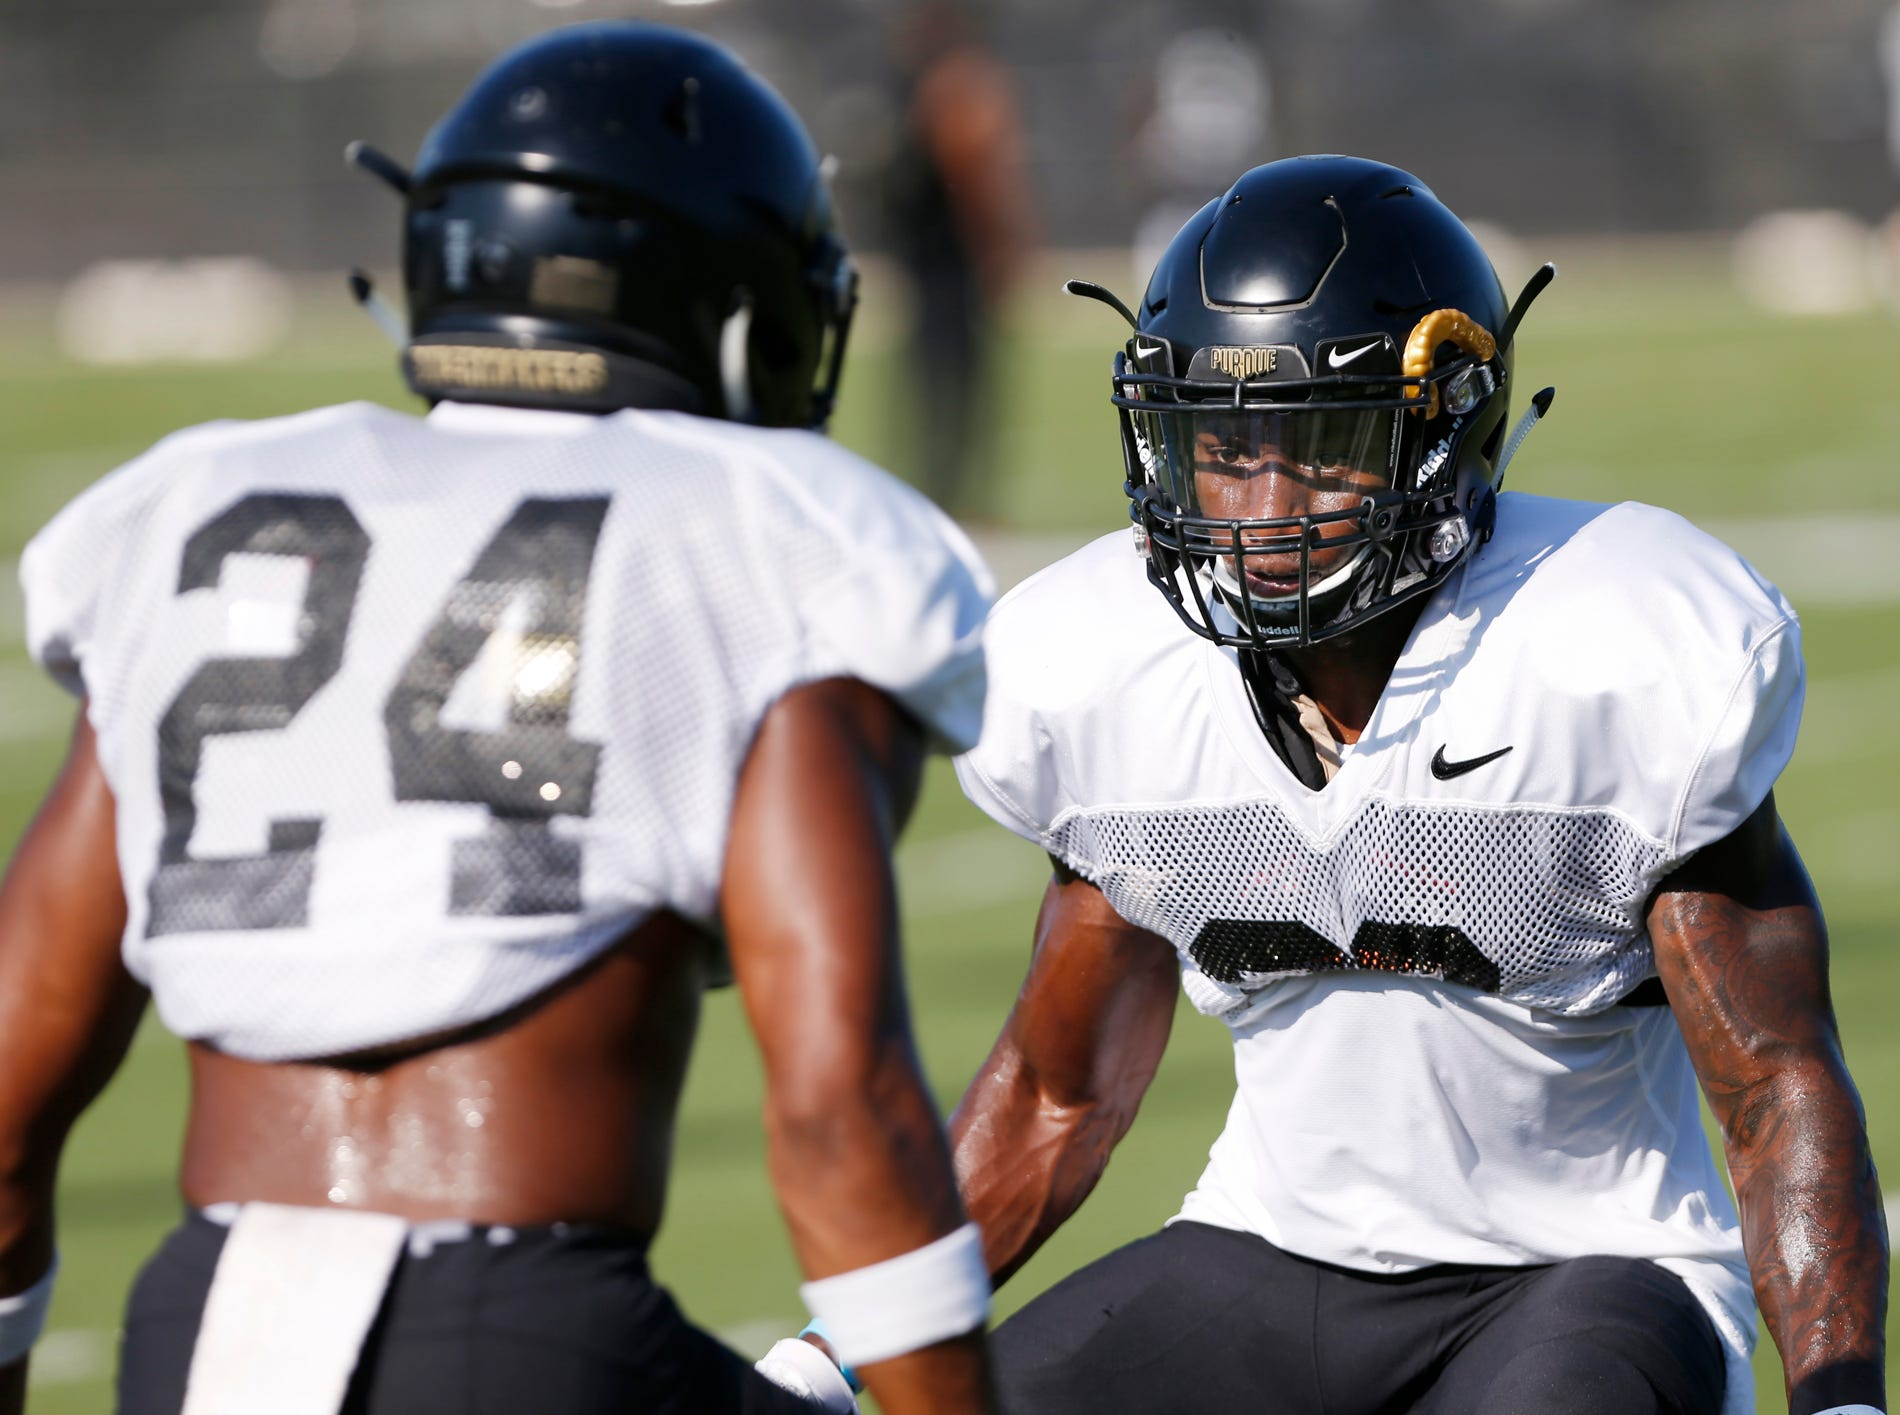 Cornerback Kenneth Major, right, matches up opposite fellow cornerback Tim Cason in a drill during Purdue football practice Thursday, August 9, 2018, in West Lafayette.